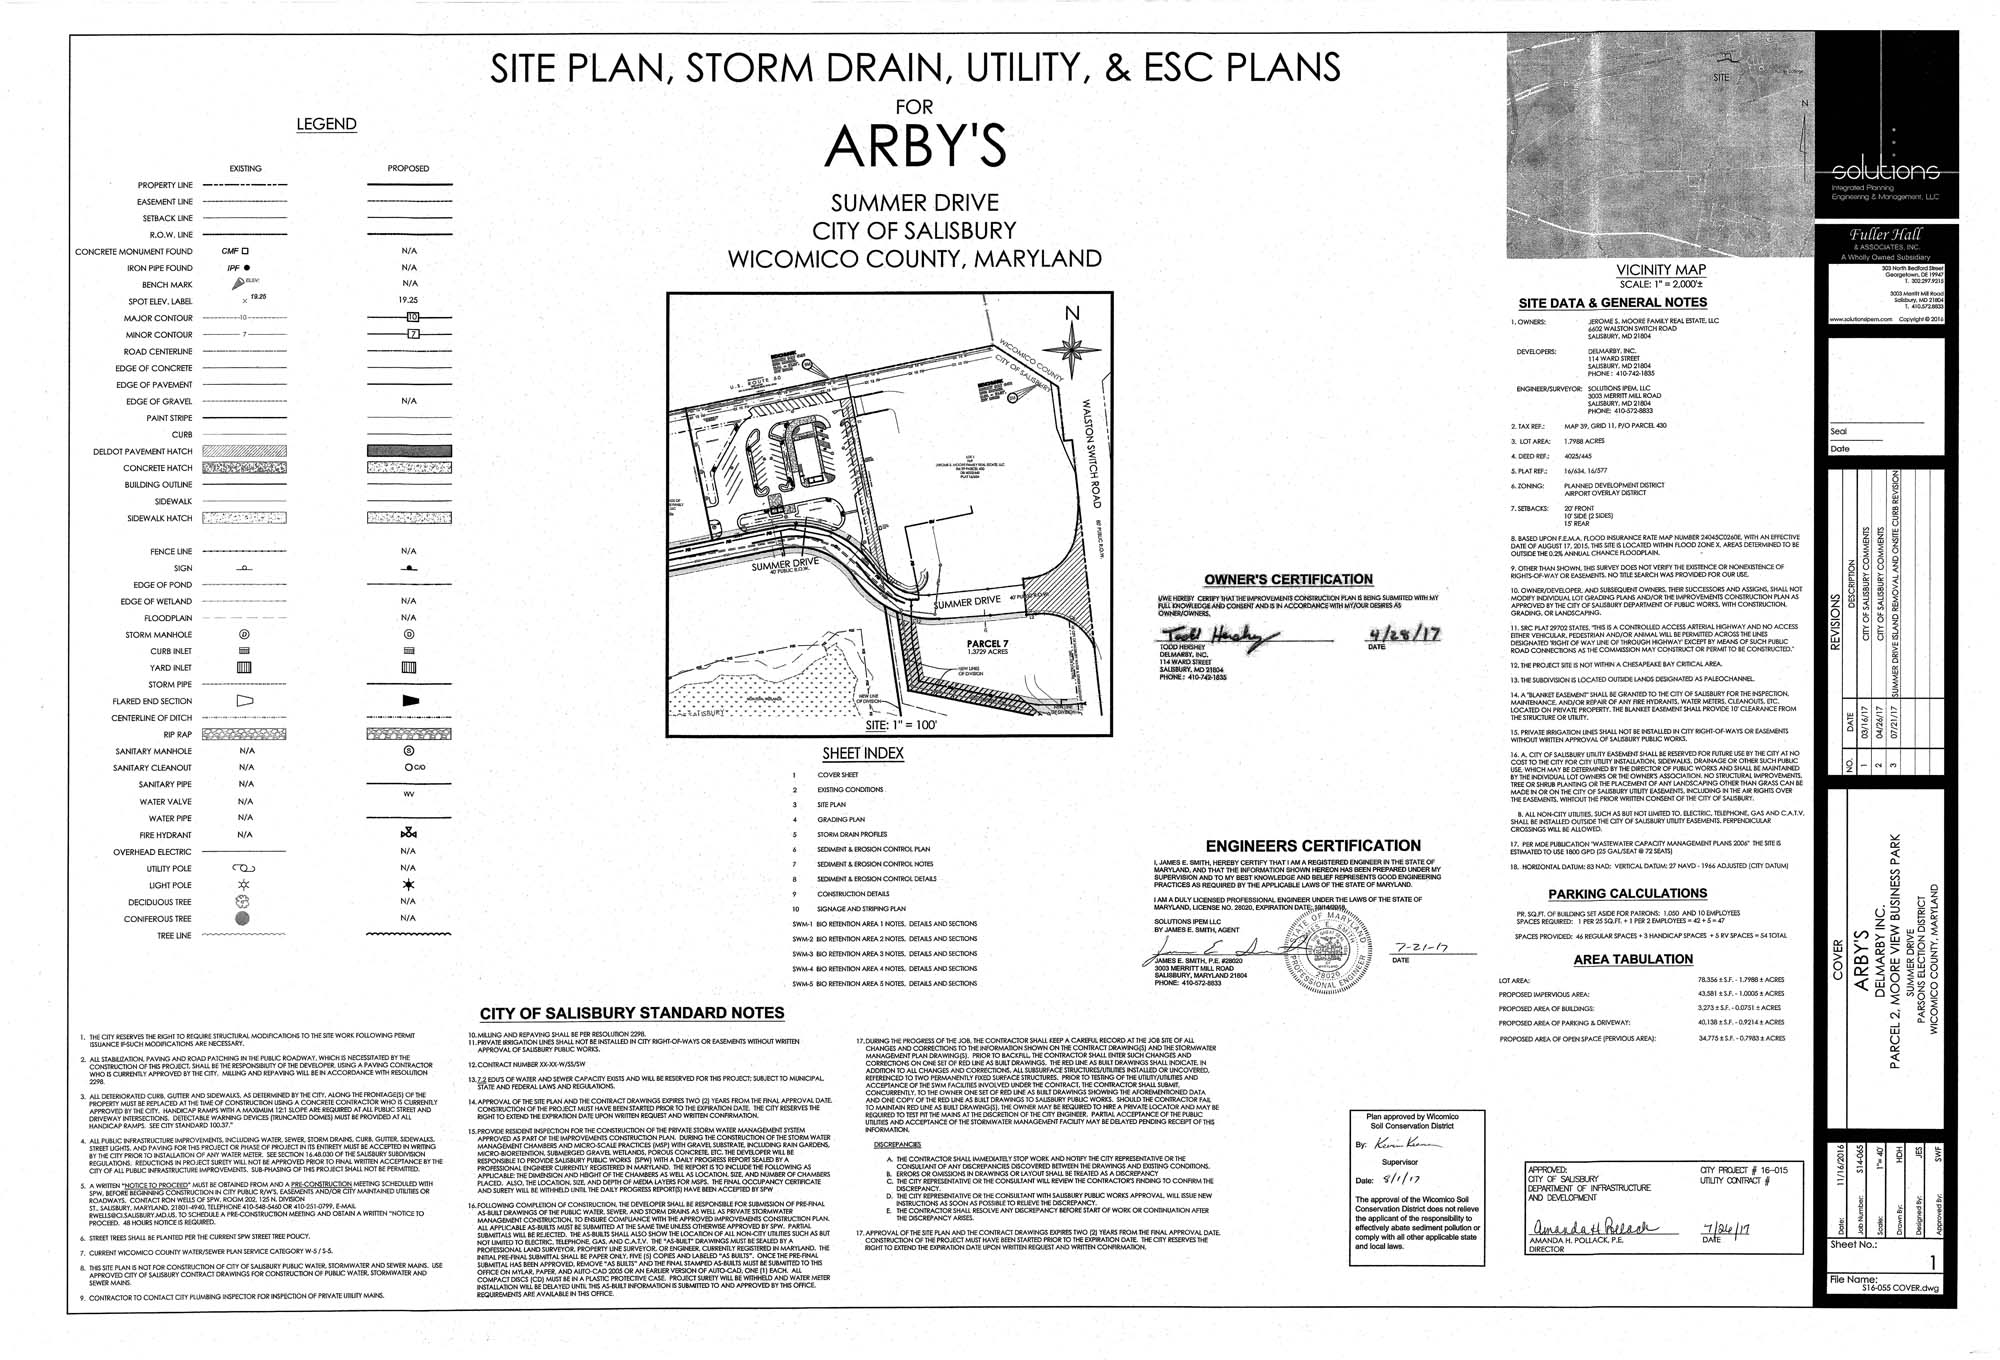 Arby's Approved Site Construction Plans - Revised 7-26-17 1.jpg